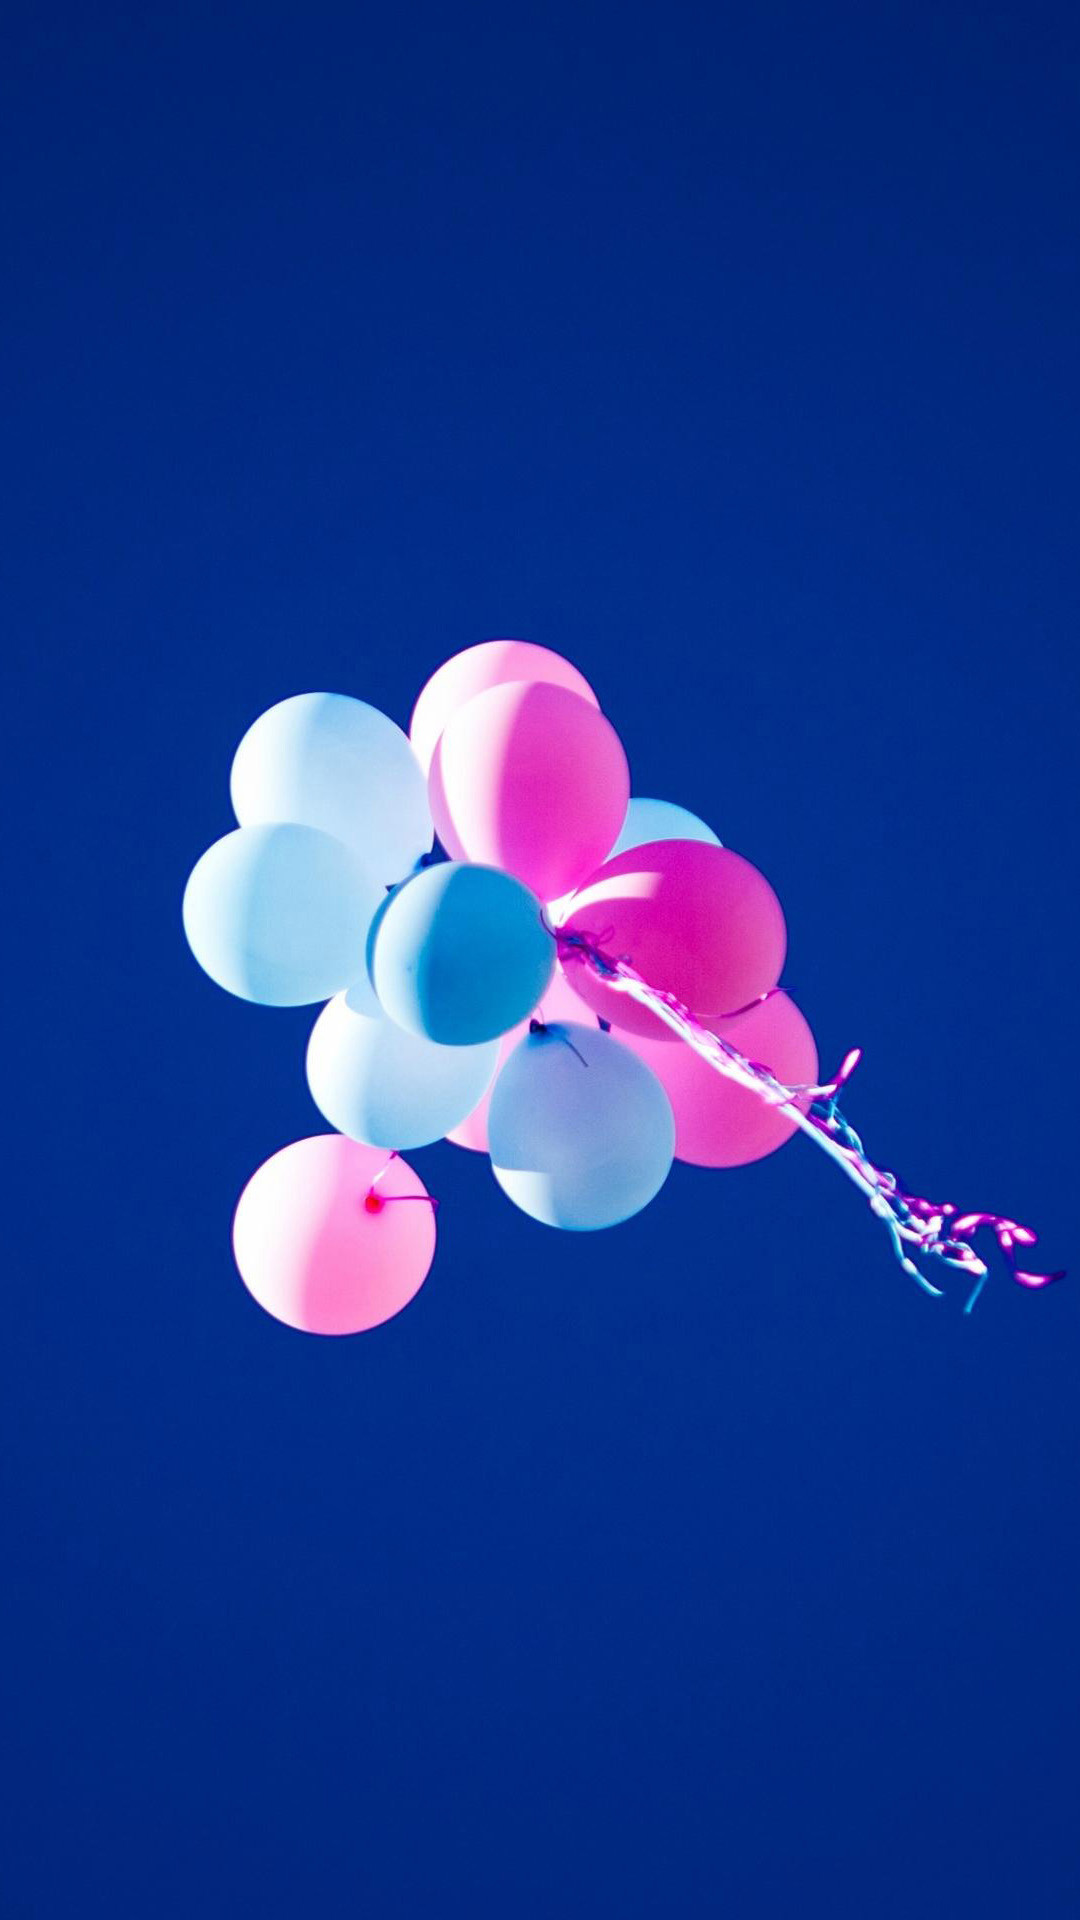 1080x1920 HD Balloons Blue Sky Pink Android Wallpaper ...